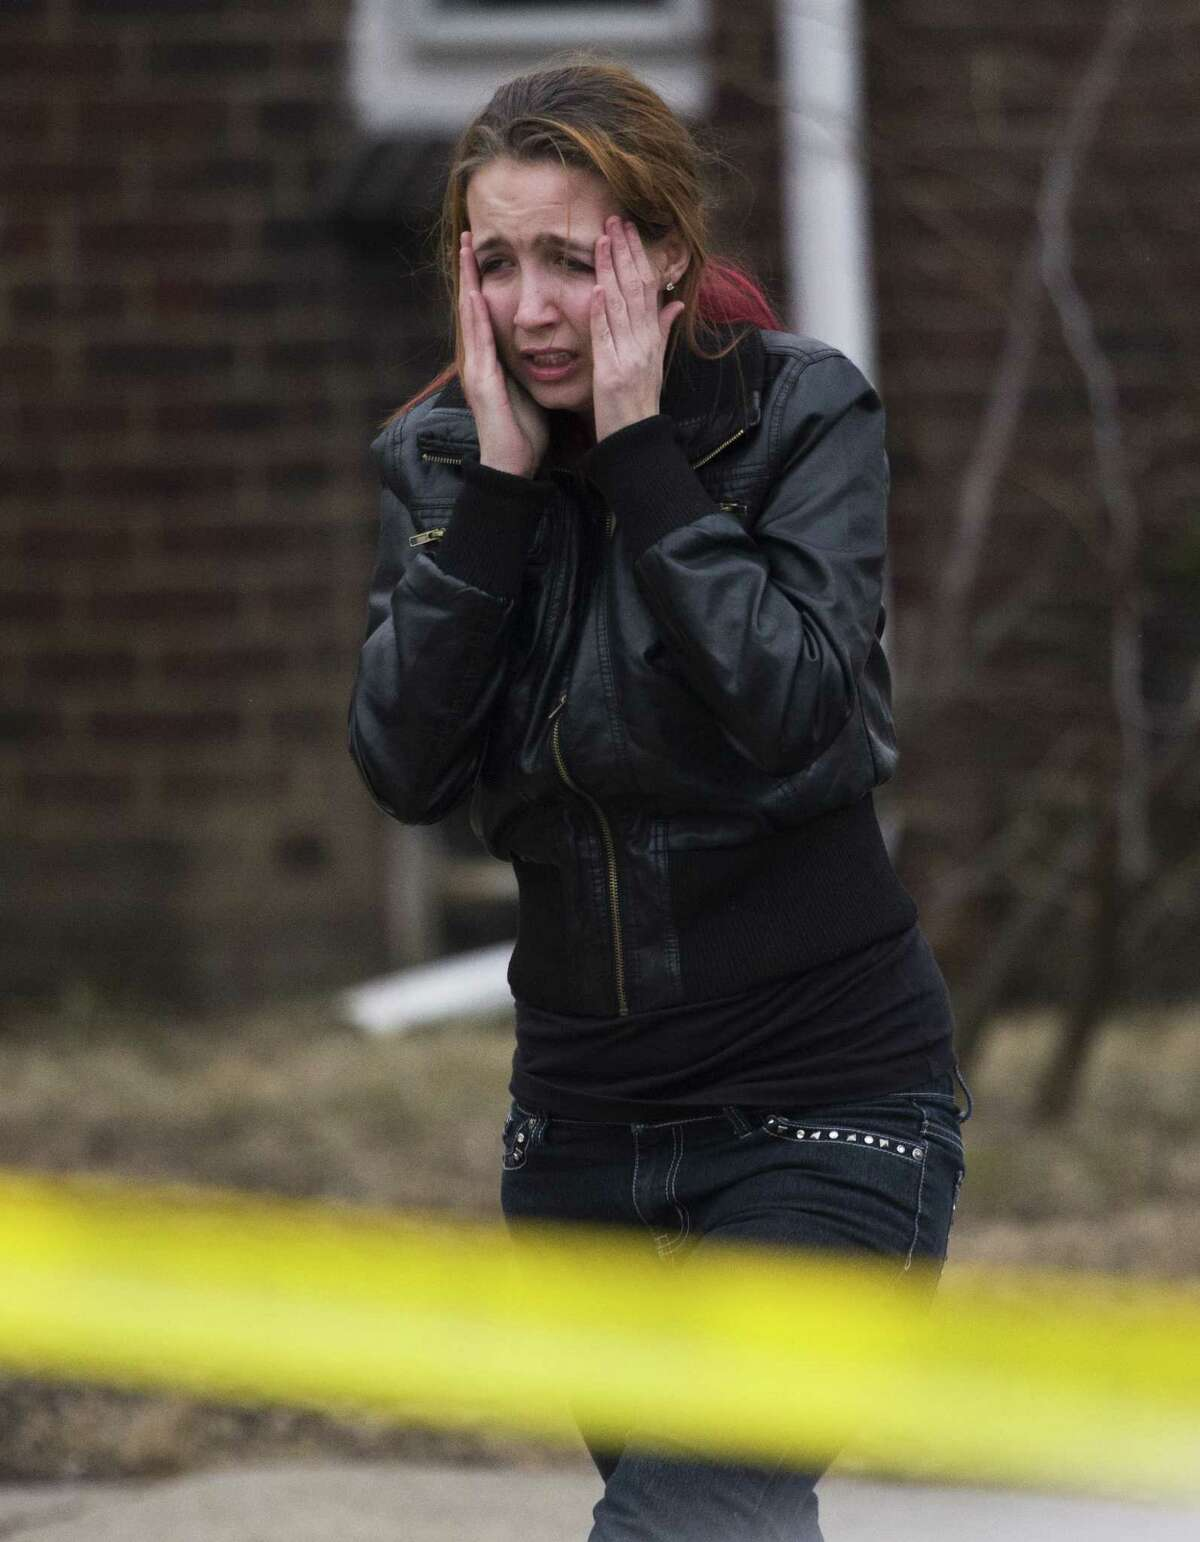 A mourner walks away from the scene where three bodies were found in a house at 11000 block of Coyle Street in Detroit on Thursday. A woman says a 5-year-old girl watched as a man fatally shot her mother and two other people to death at a house on Detroit's northwest side.